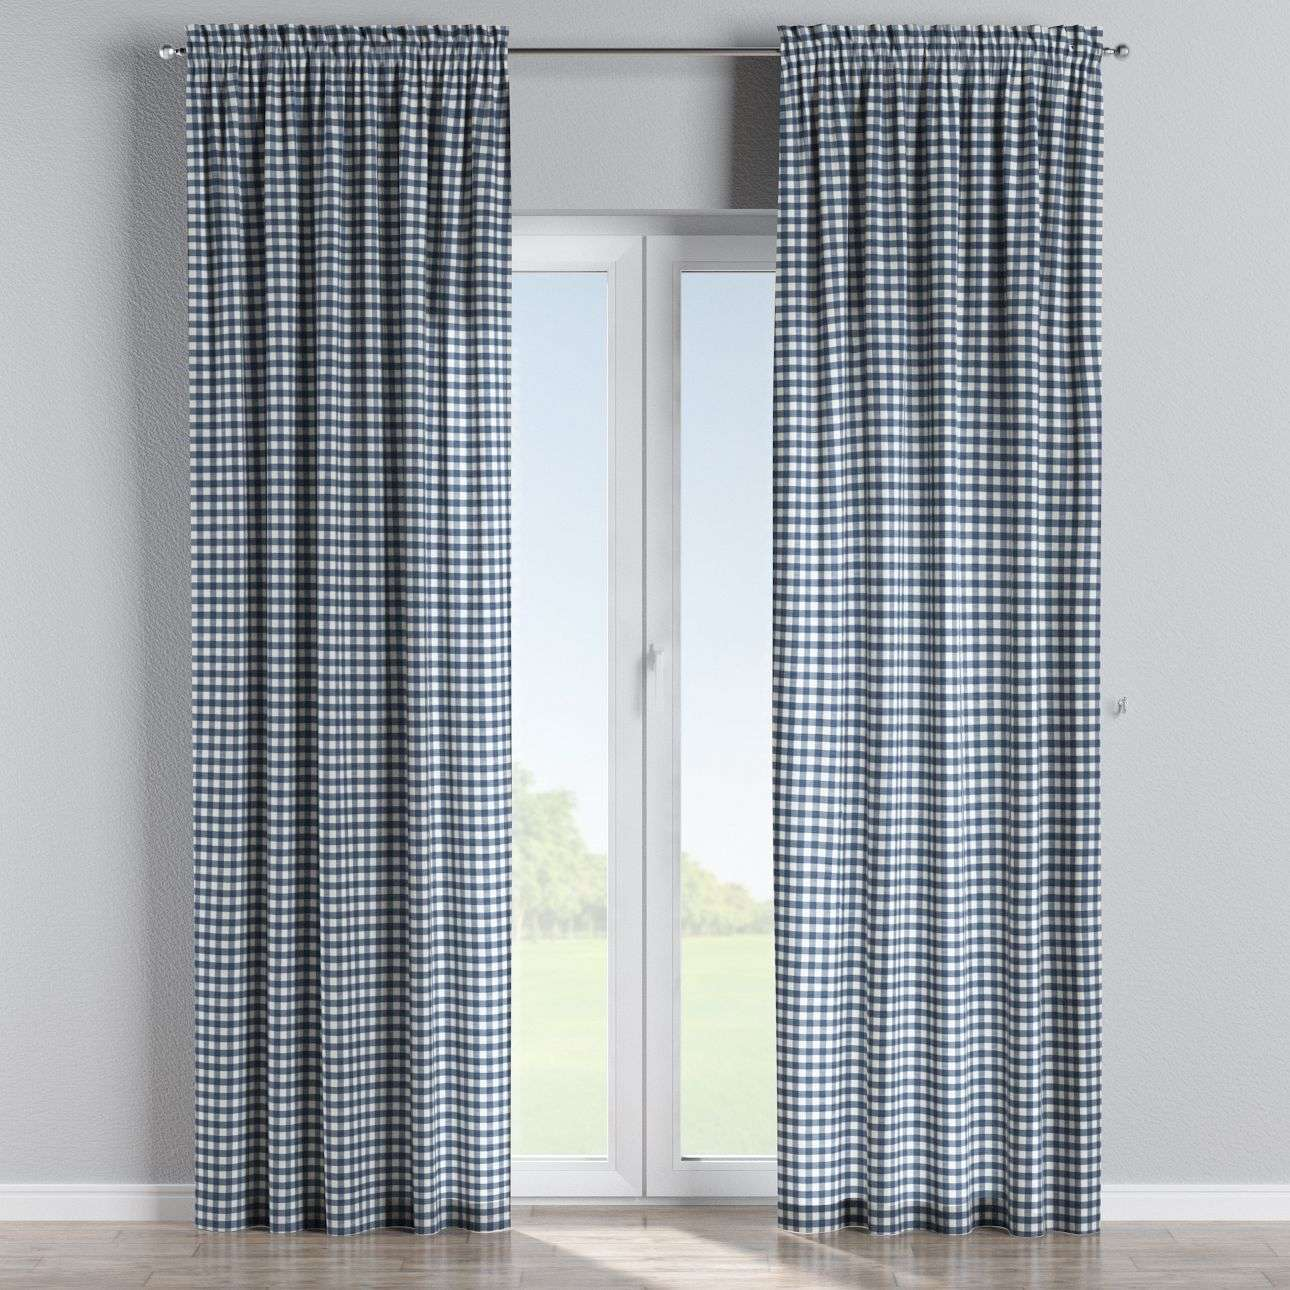 Slot and frill curtains 130 x 260 cm (51 x 102 inch) in collection Quadro, fabric: 136-01